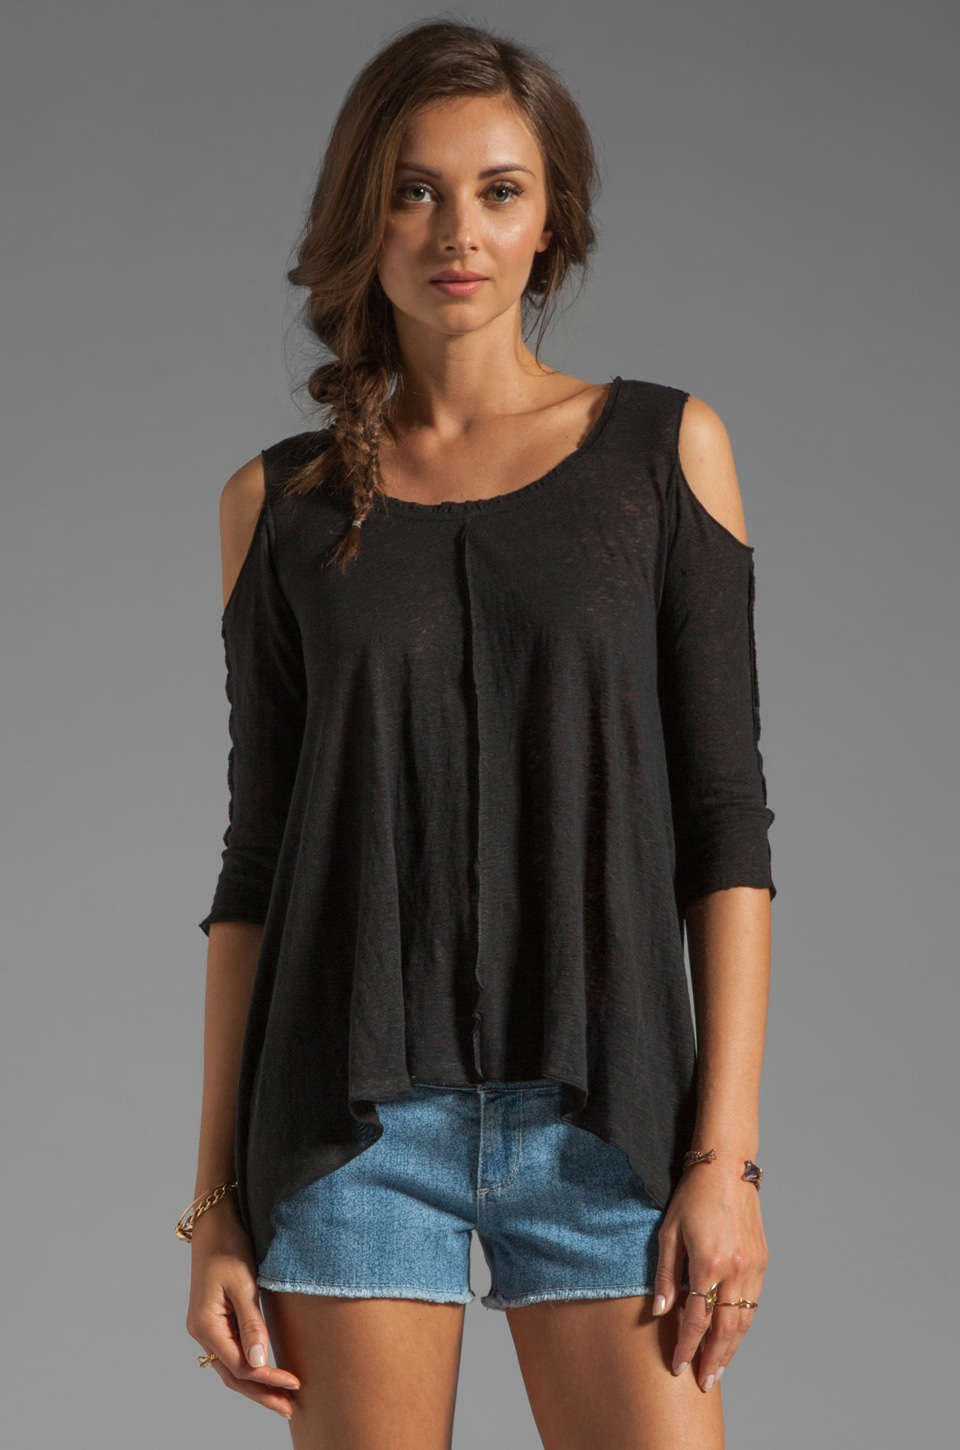 Bailey 44 Mariposa Top in Negro